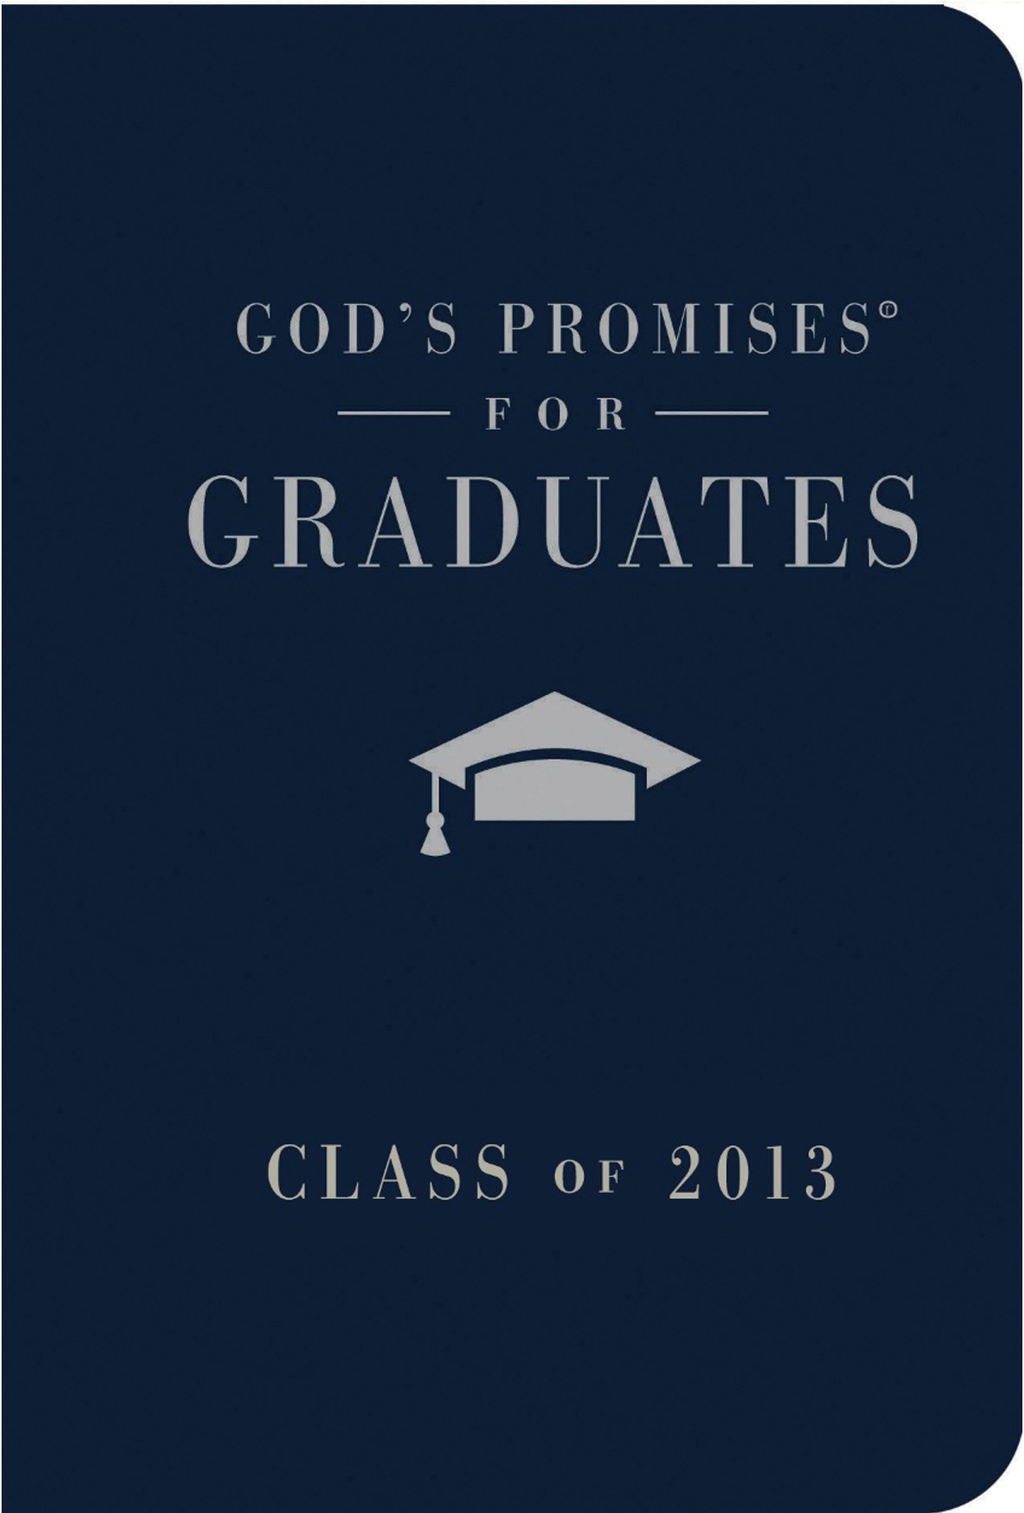 God's Promises for Graduates: Class of 2013 - Navy